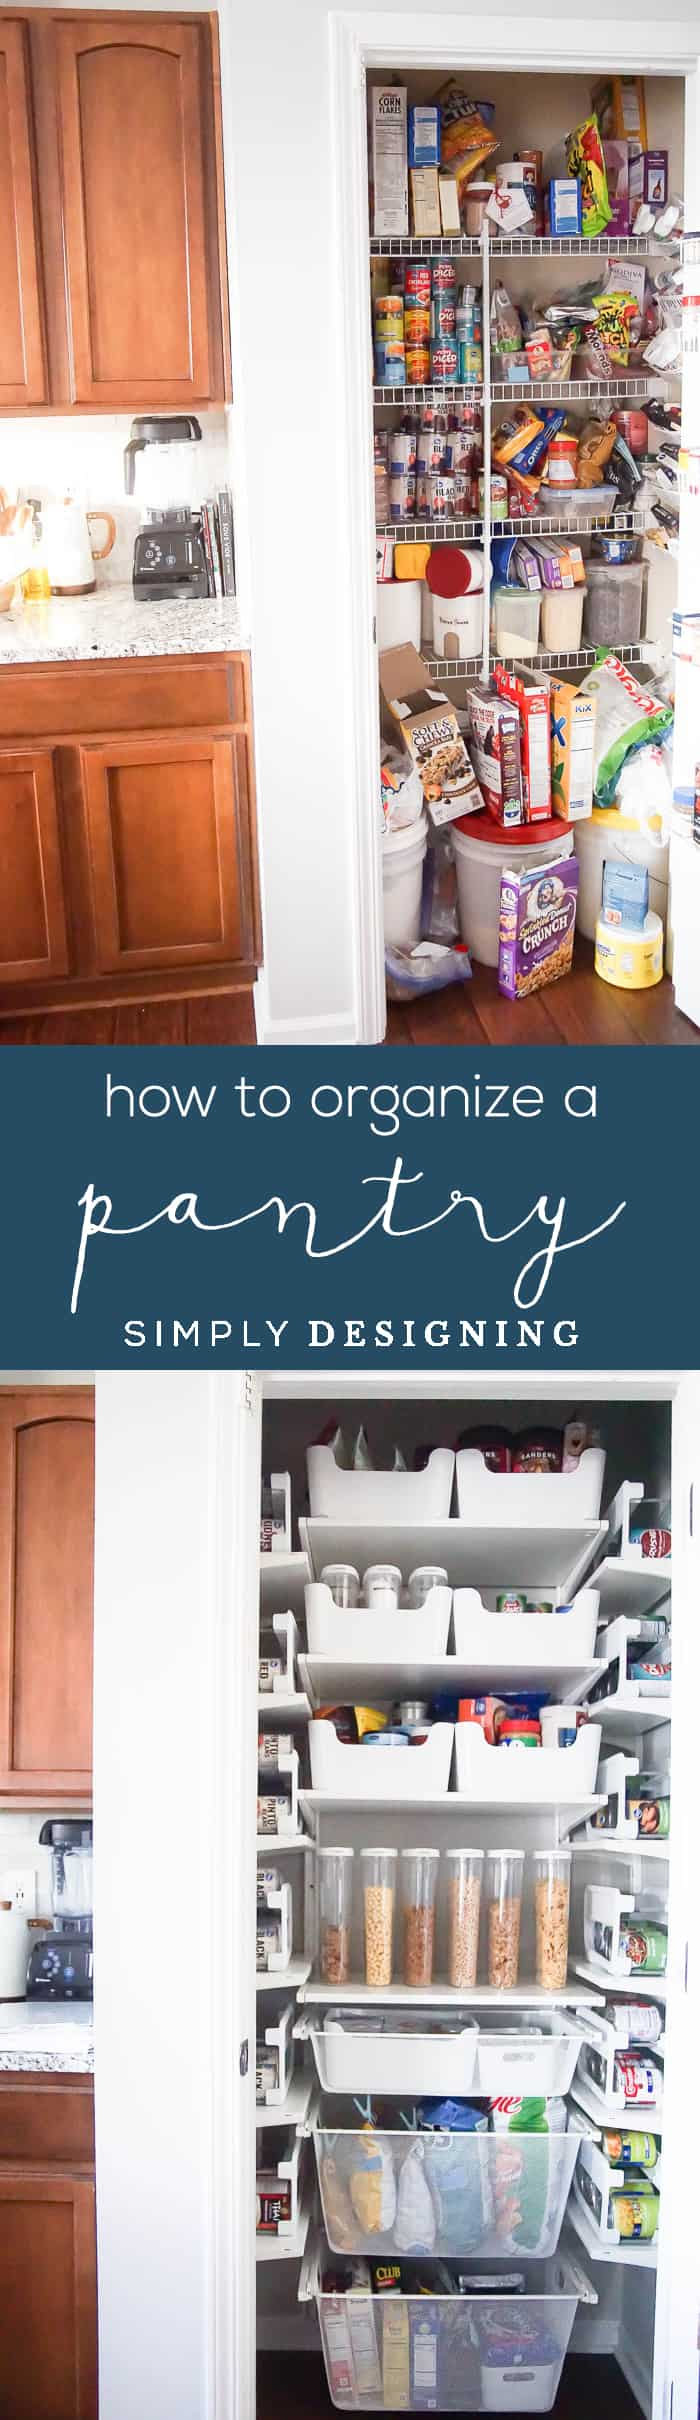 DIY Pantry Organization Ideas - how to organize a pantry - oranize a small pantry - pantry ideas for small spaces